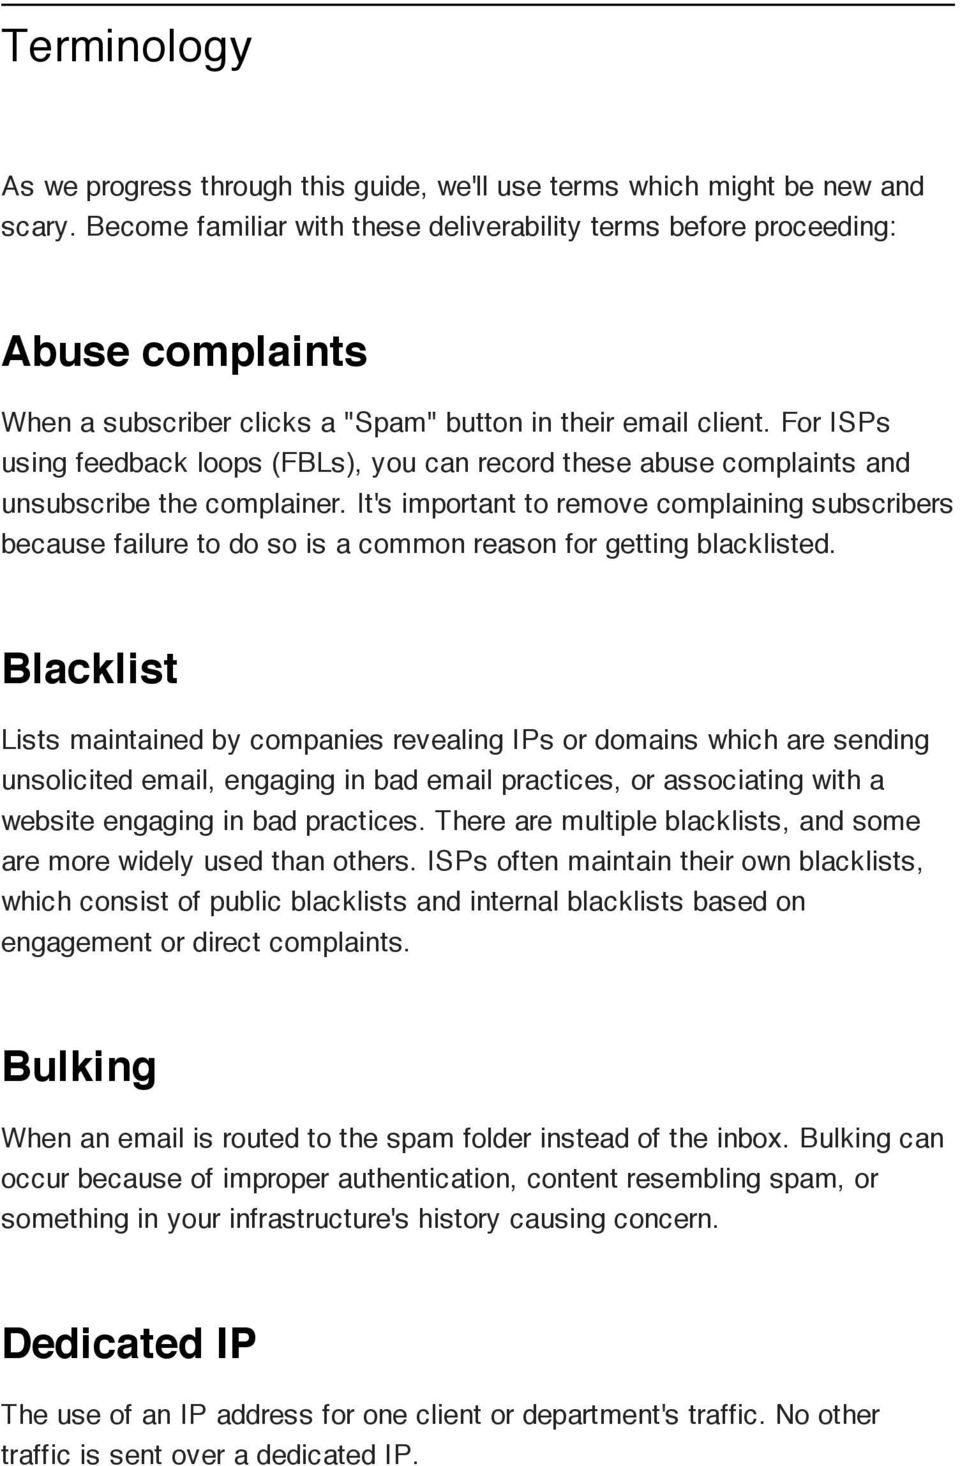 For ISPs using feedback loops (FBLs), you can record these abuse complaints and unsubscribe the complainer.